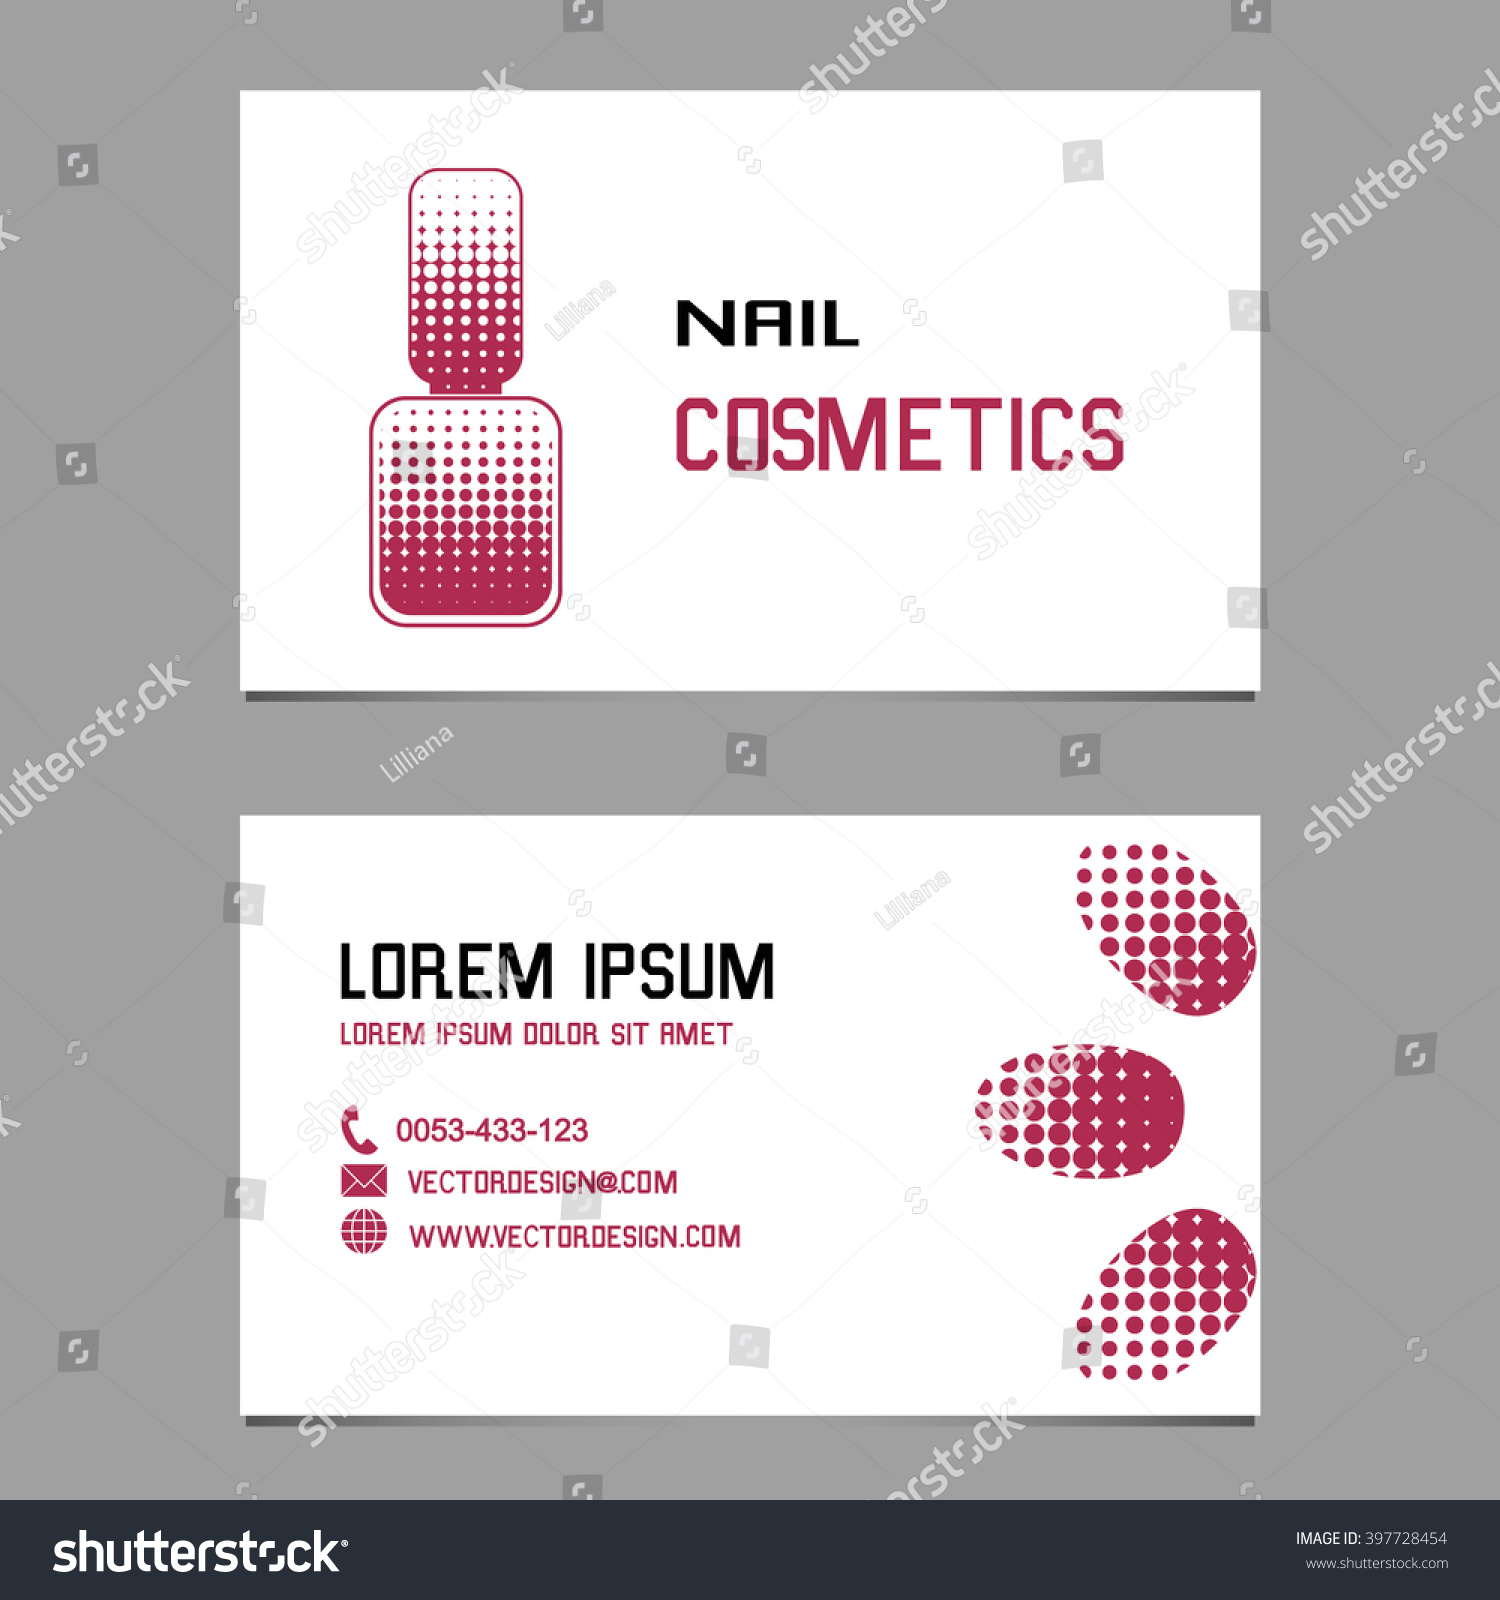 Design business cards logo company manicure stock vector 397728454 design business cards and logo of the company for manicure nail cosmetics and nail magicingreecefo Image collections